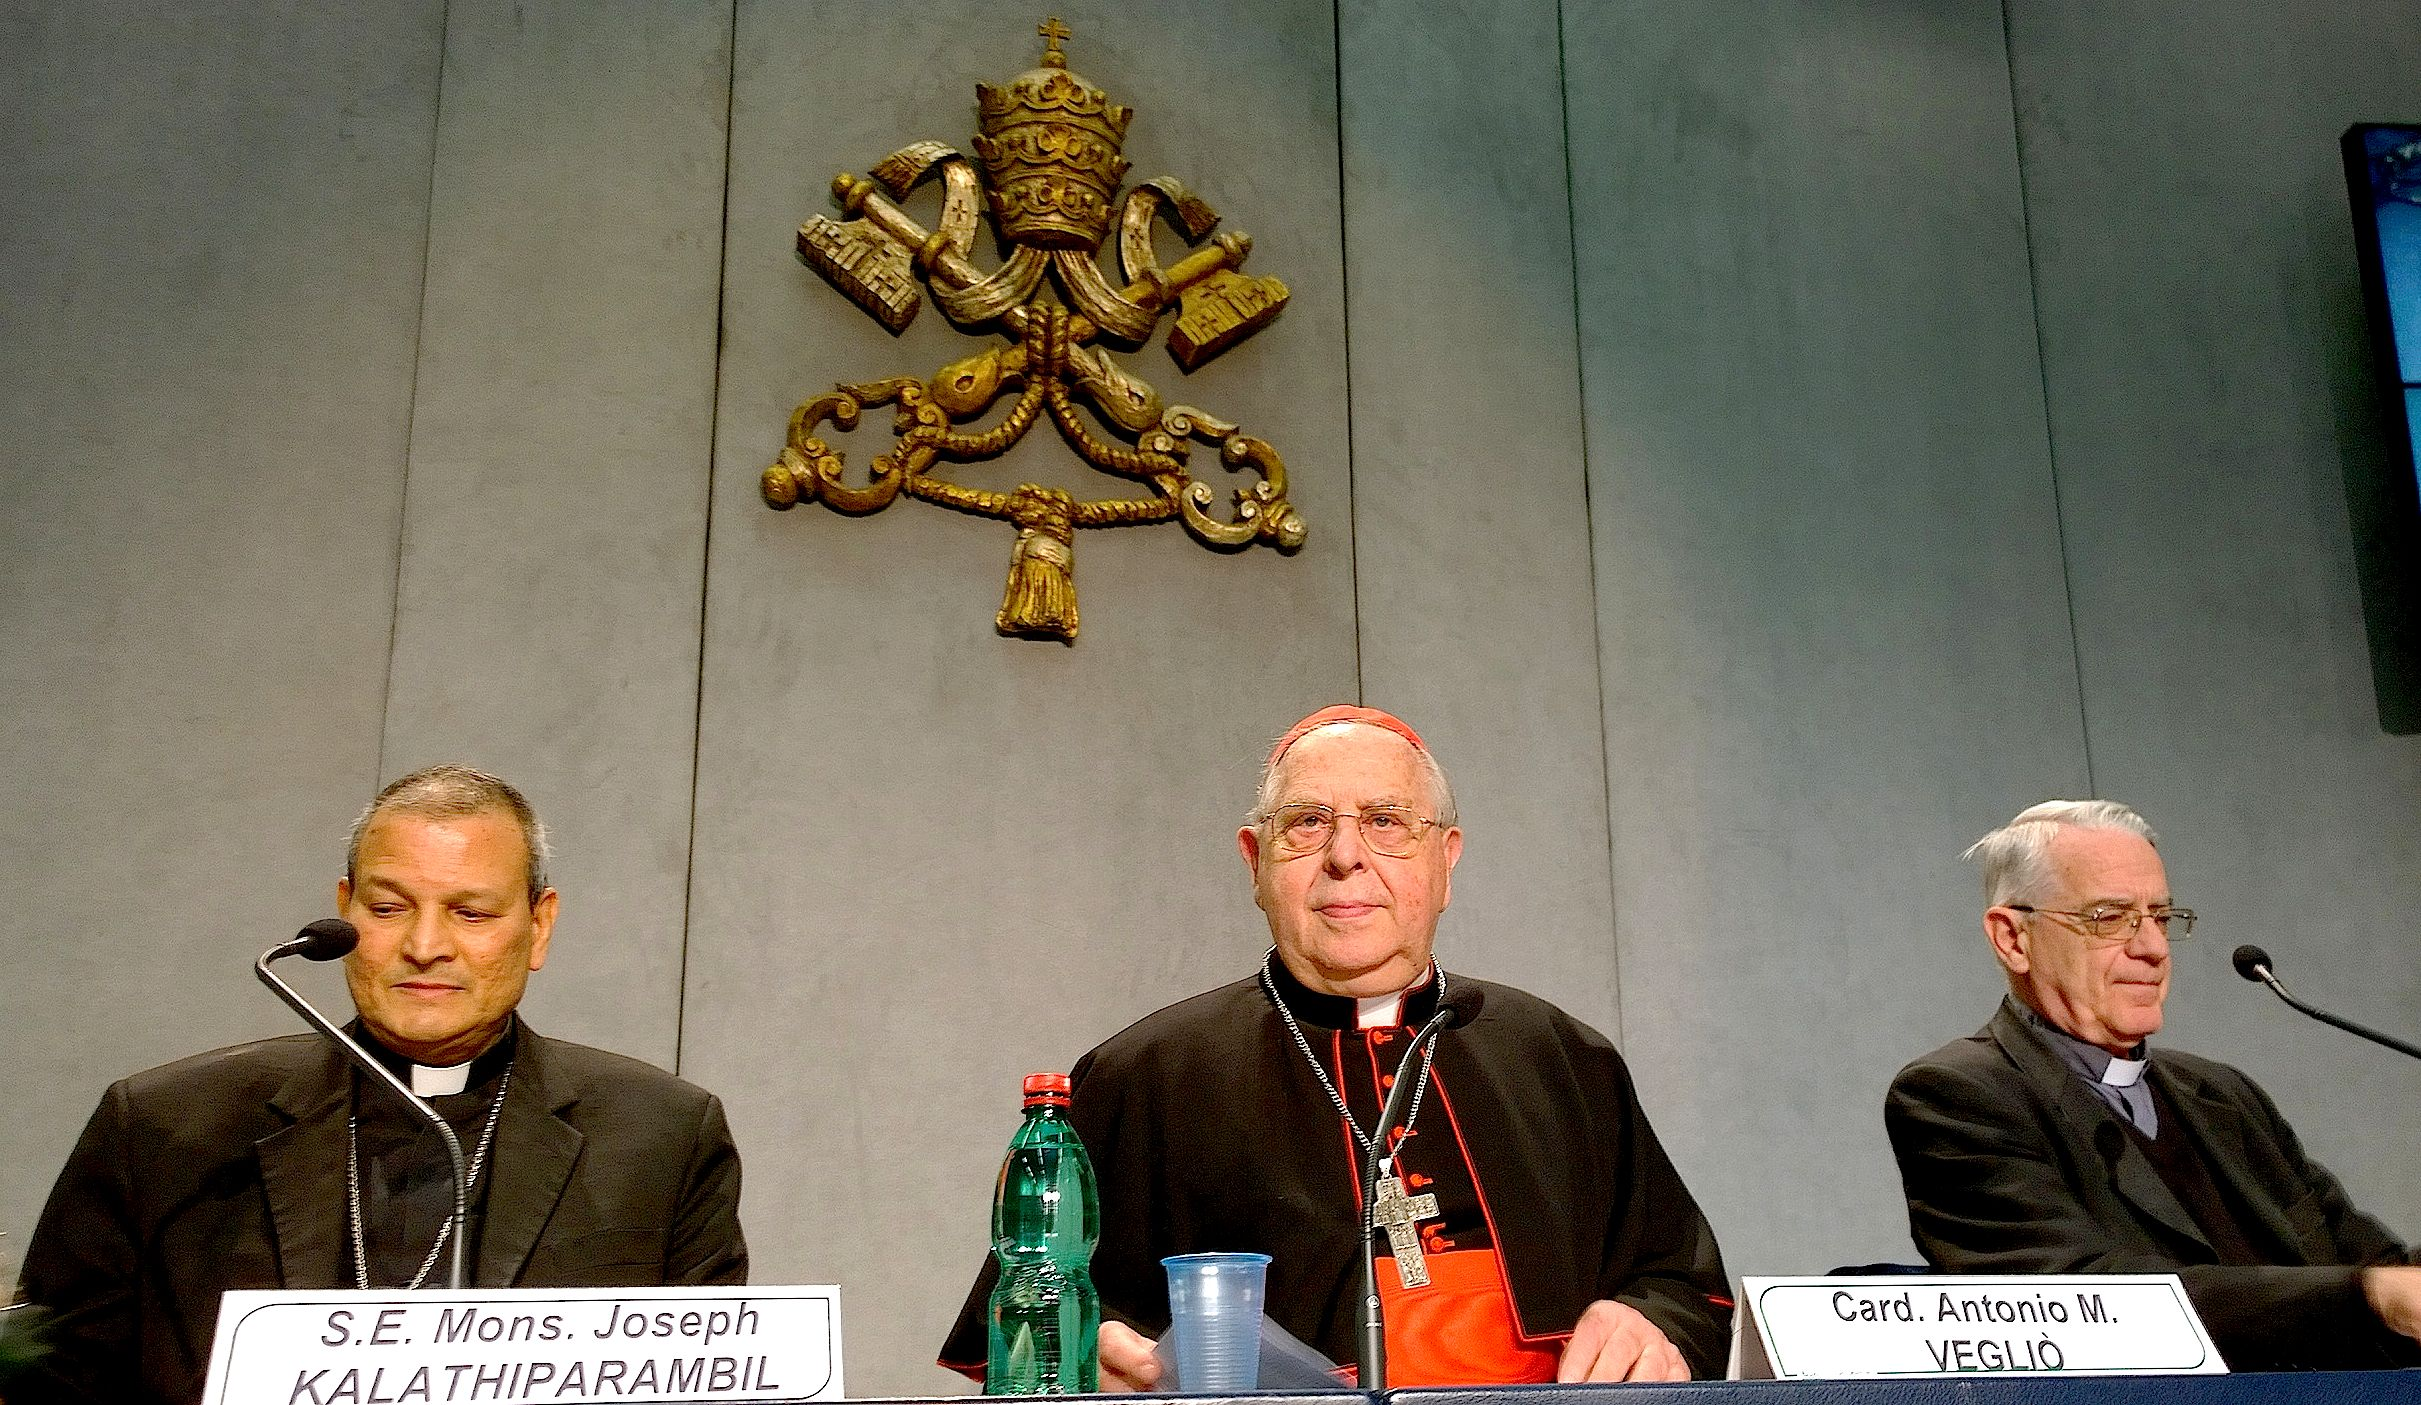 Cardinal Vegliò during the presentation of the Francis message for the migrants day.  Holy See press room 1 october 2015